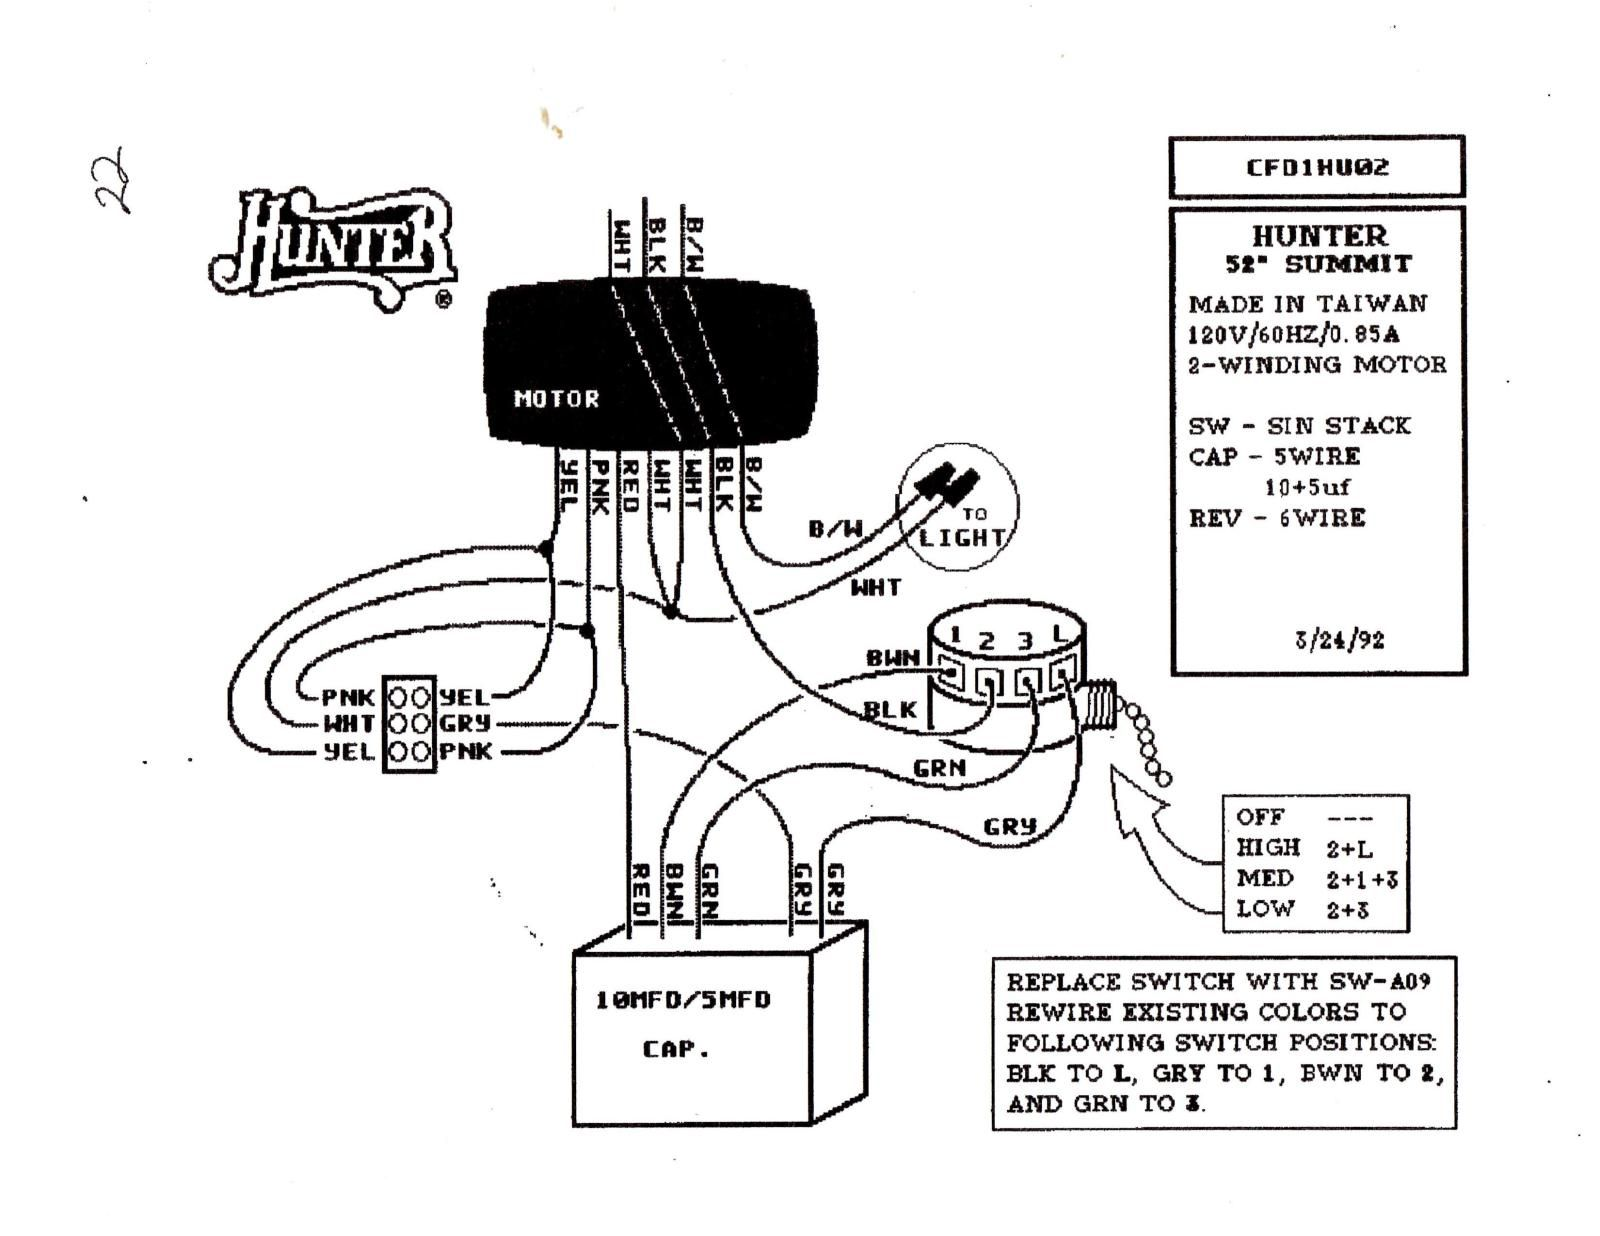 Need part and wiring diagram   Vintage Ceiling Fans.Com Forums   Ceiling  fan wiring, Ceiling fan switch, Ceiling fan pull chainPinterest